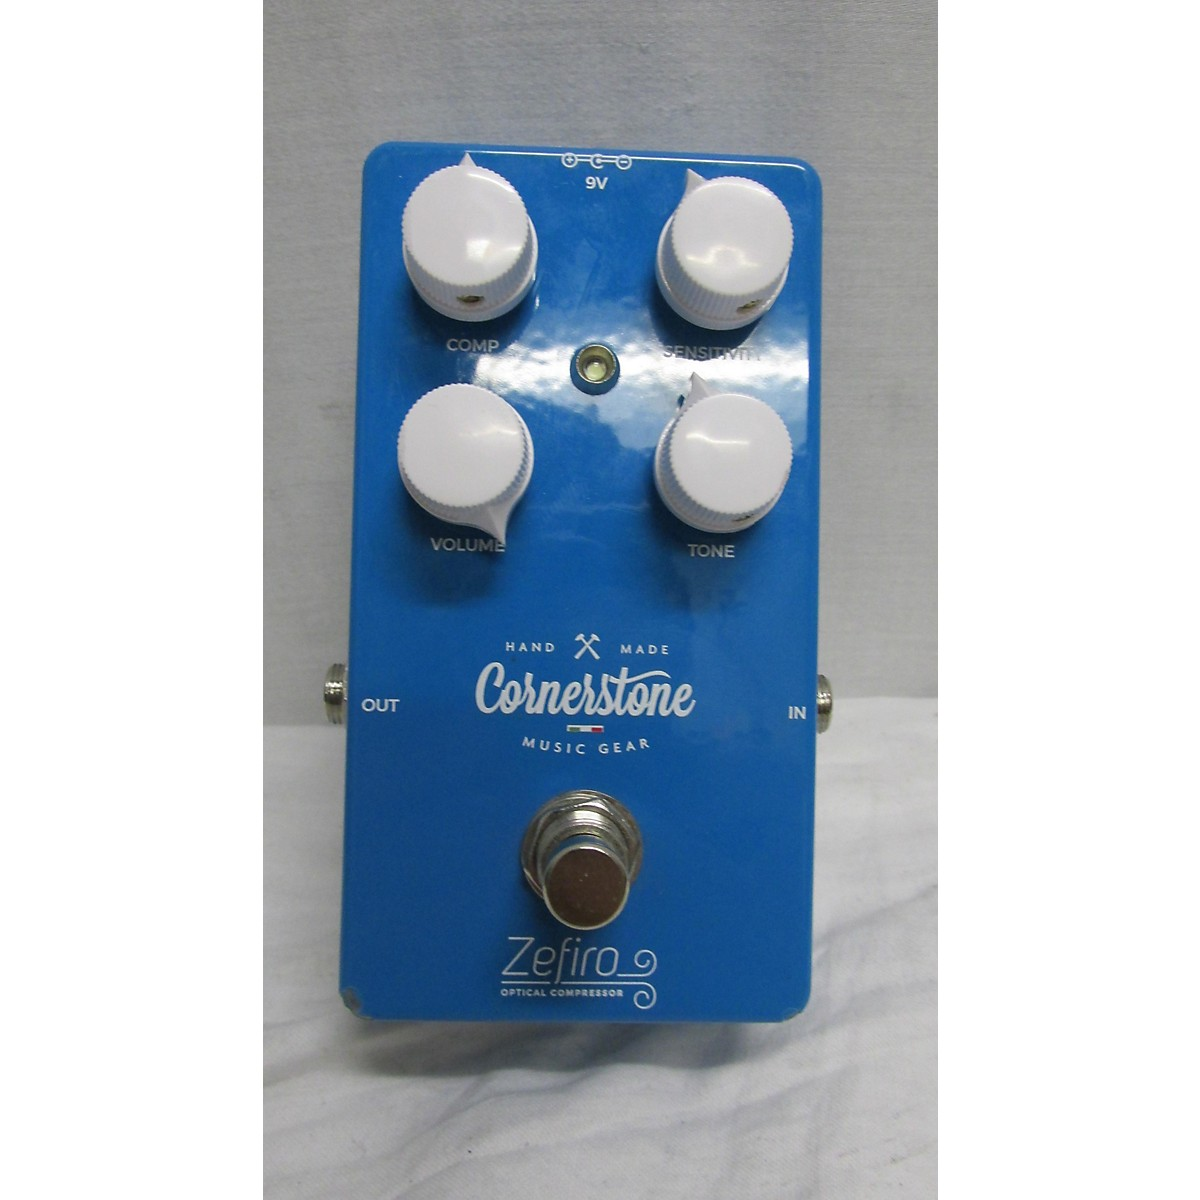 In Store Used Used CORNERSTONE MUSIC GEAR ZEFIRO Effect Pedal